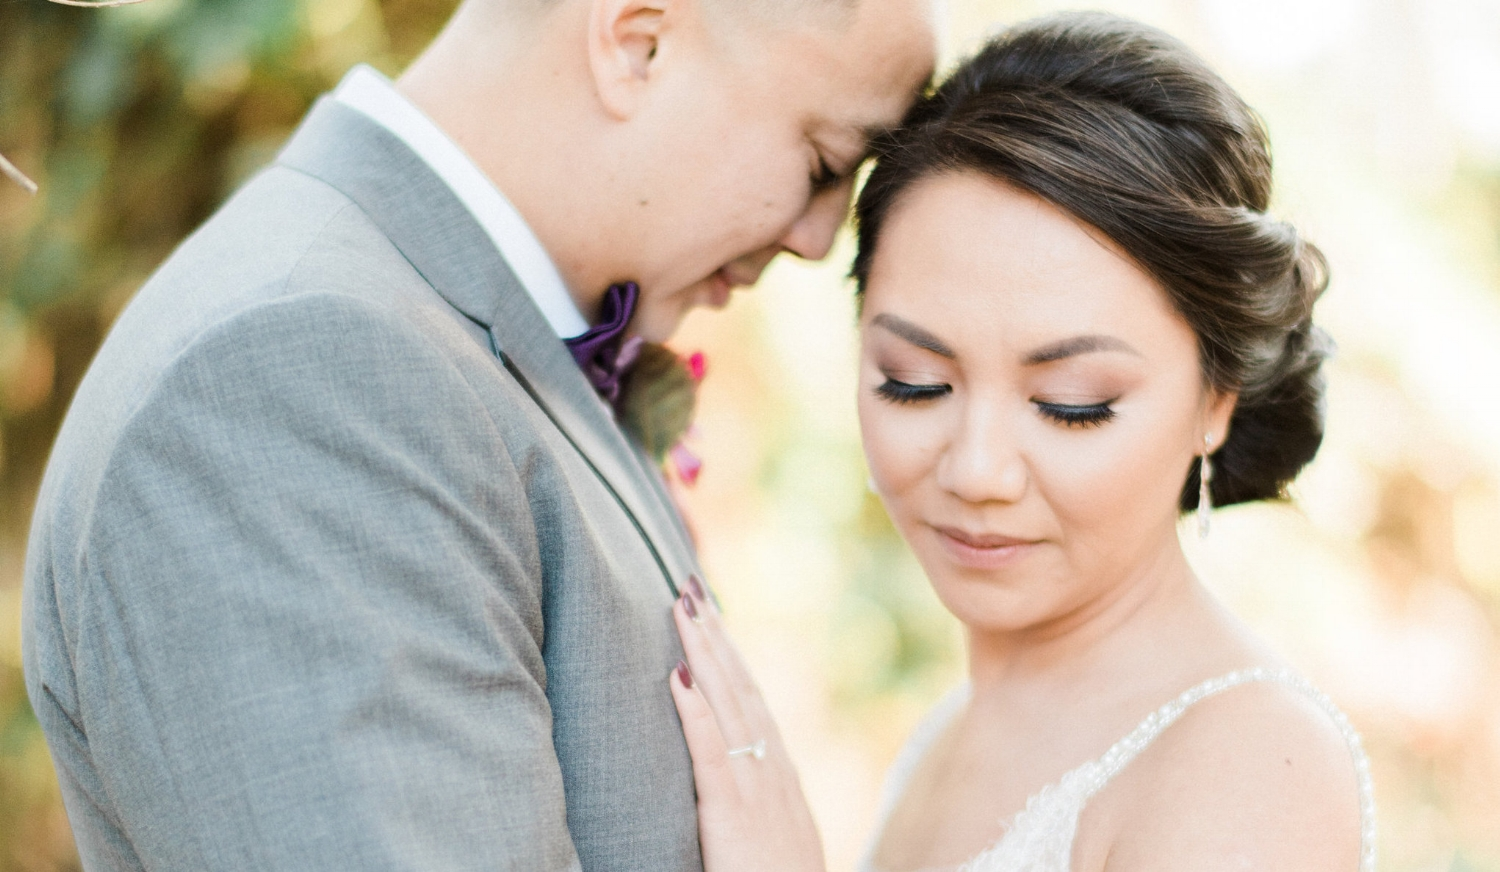 Asian Bride with Simple Makeup and Updo Hairstyle with Husband outside in Wedding Photos. Bridal Hair and Makeup by Vanity Belle in Orange County (Costa Mesa) and San Diego (La Jolla)